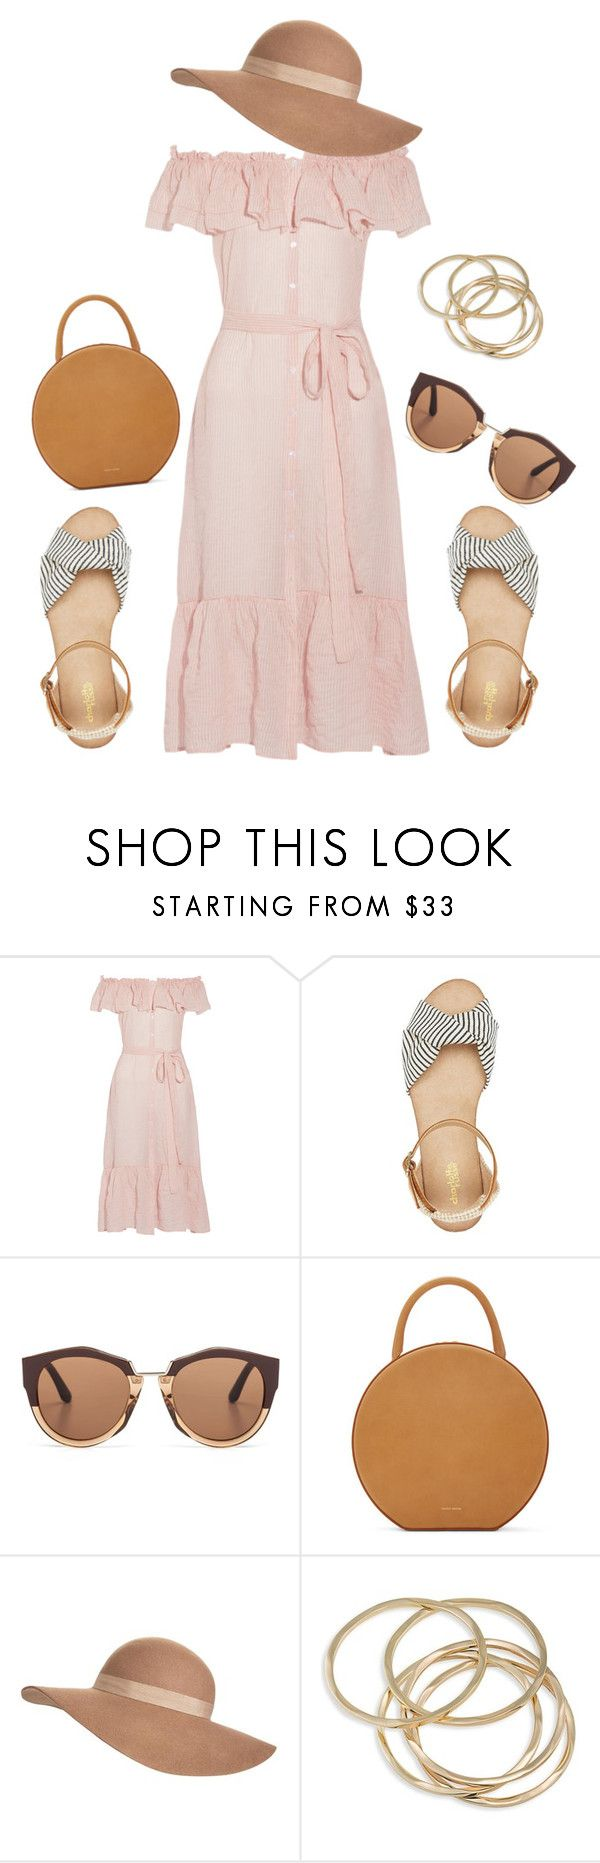 """""""Untitled #170"""" by macbarbie00 ❤ liked on Polyvore featuring Lisa Marie Fernandez, Charlotte Russe, Marni, Mansur Gavriel, Jack Wills and ABS by Allen Schwartz"""